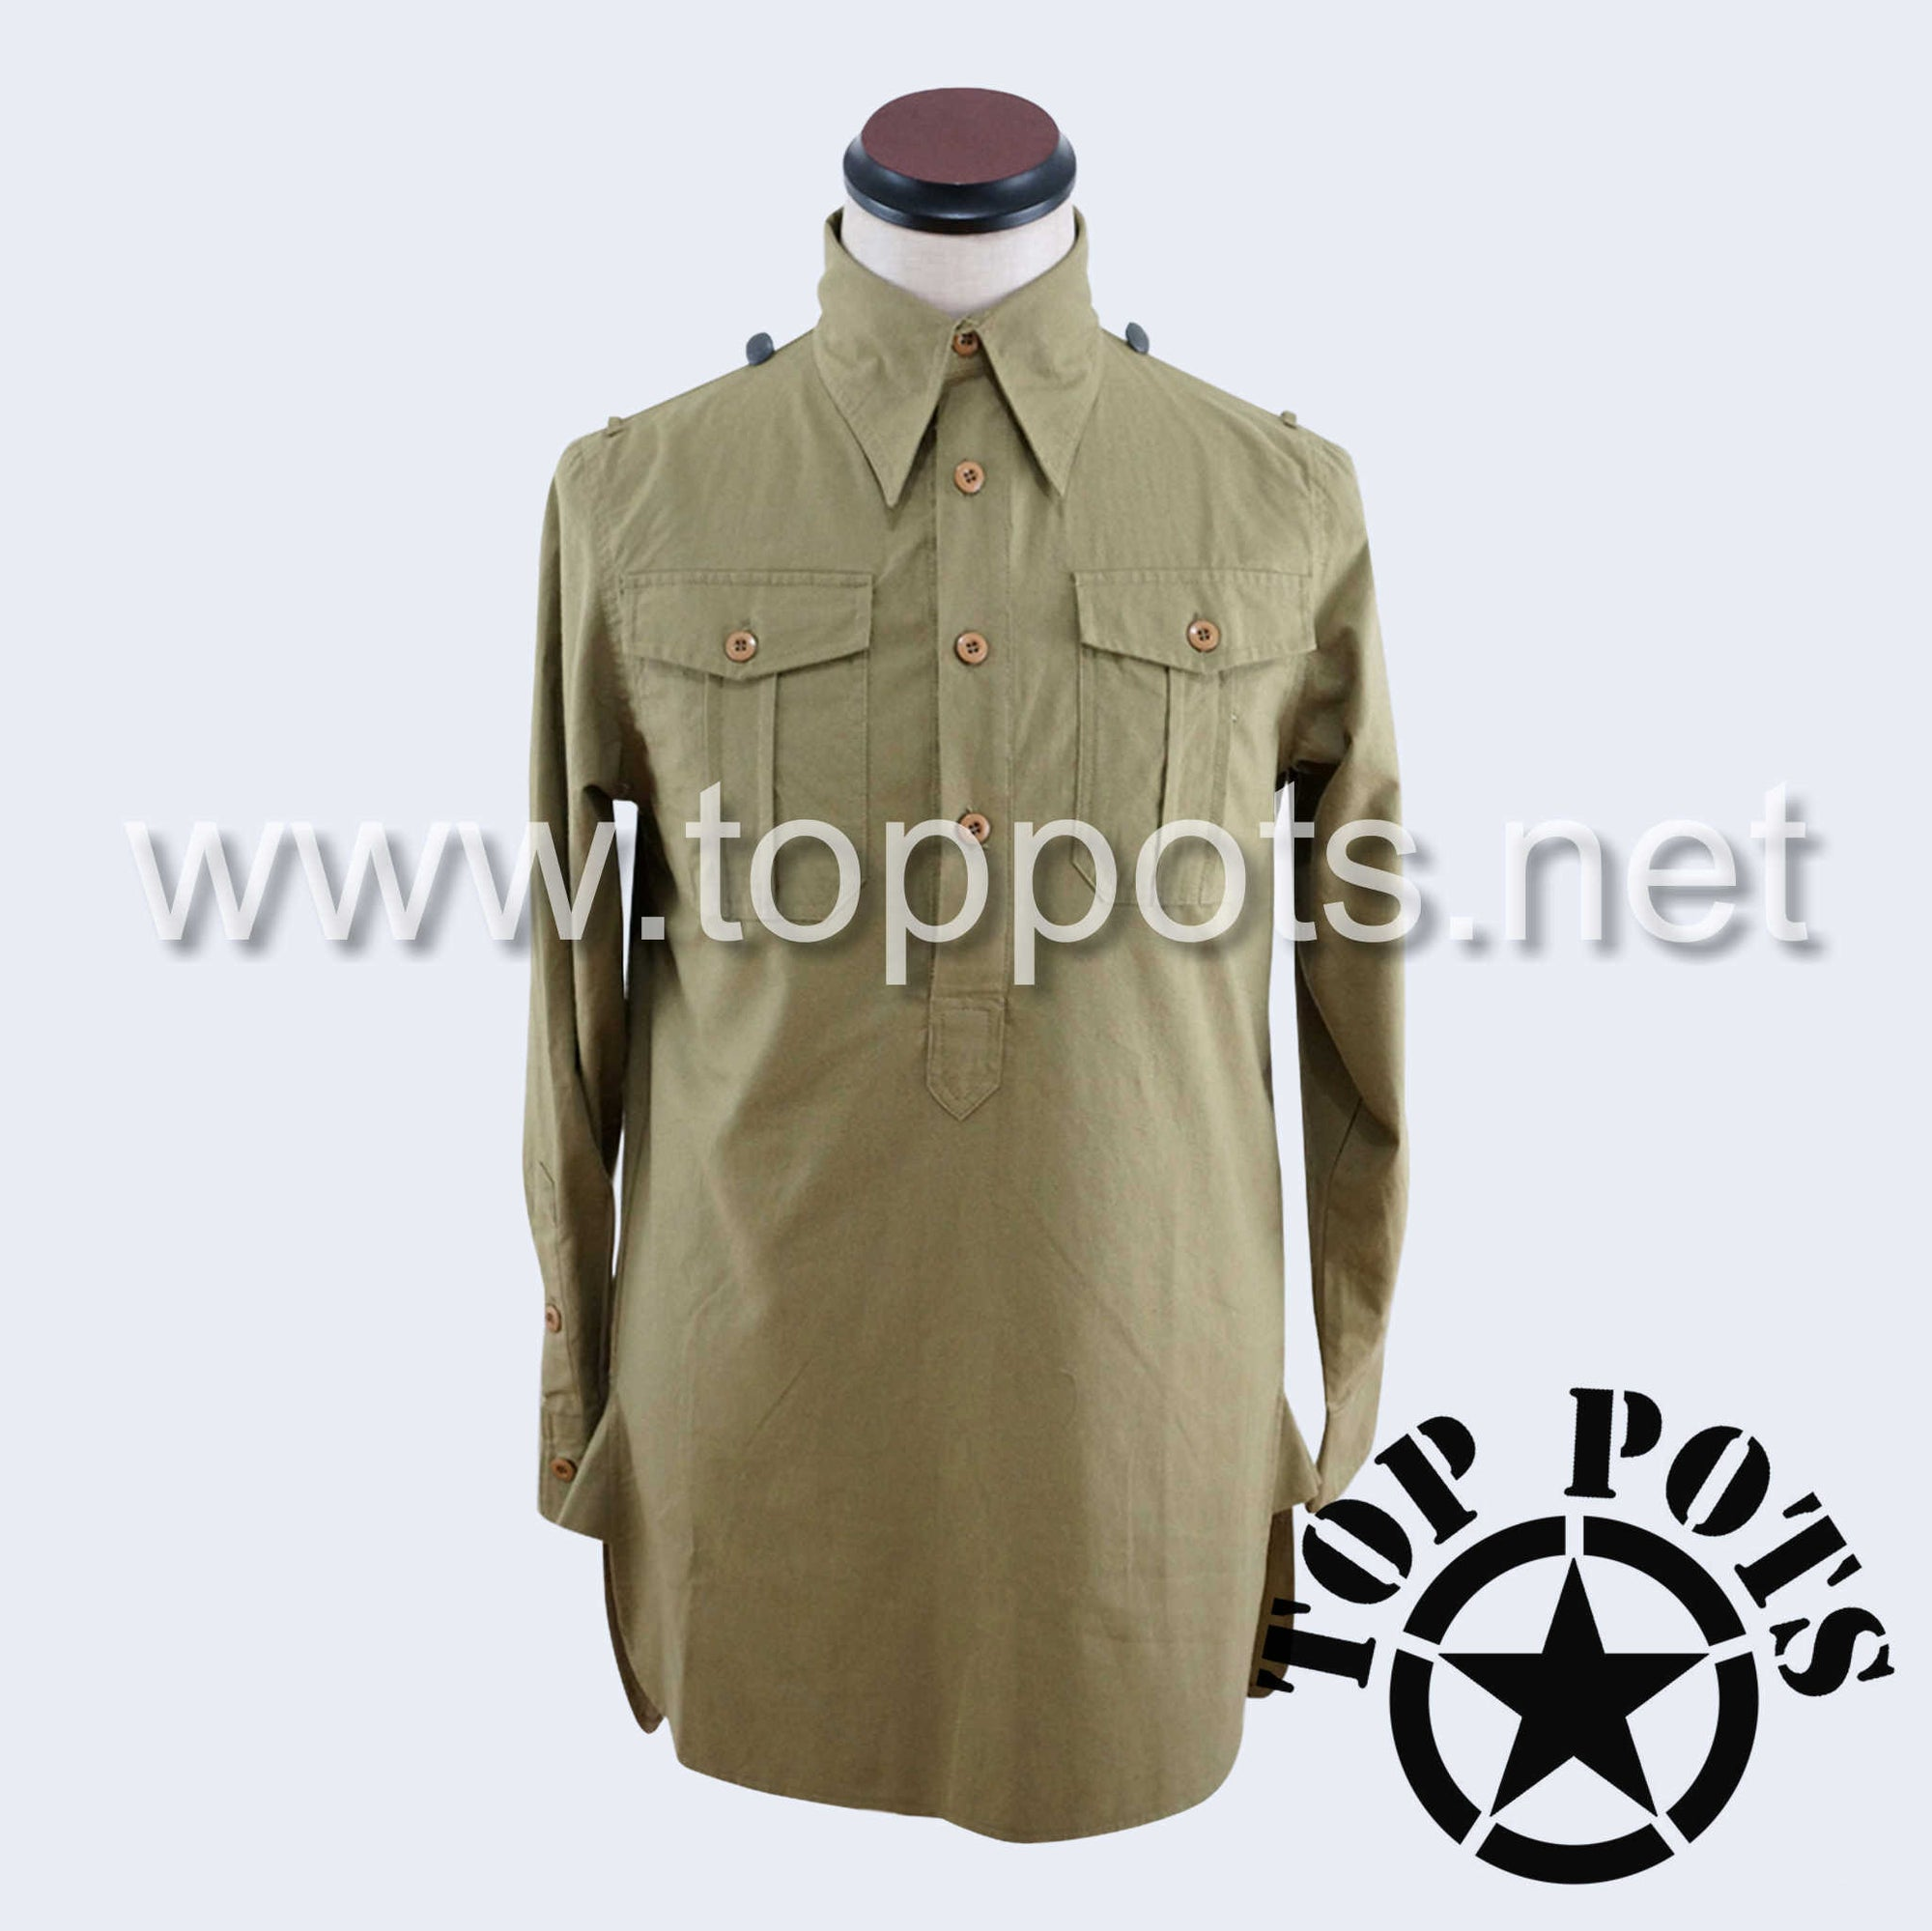 WWII German Army Waffen SS Uniform Long Sleeve Service Shirt - Mediterranean Tropical Sand Khaki Tan